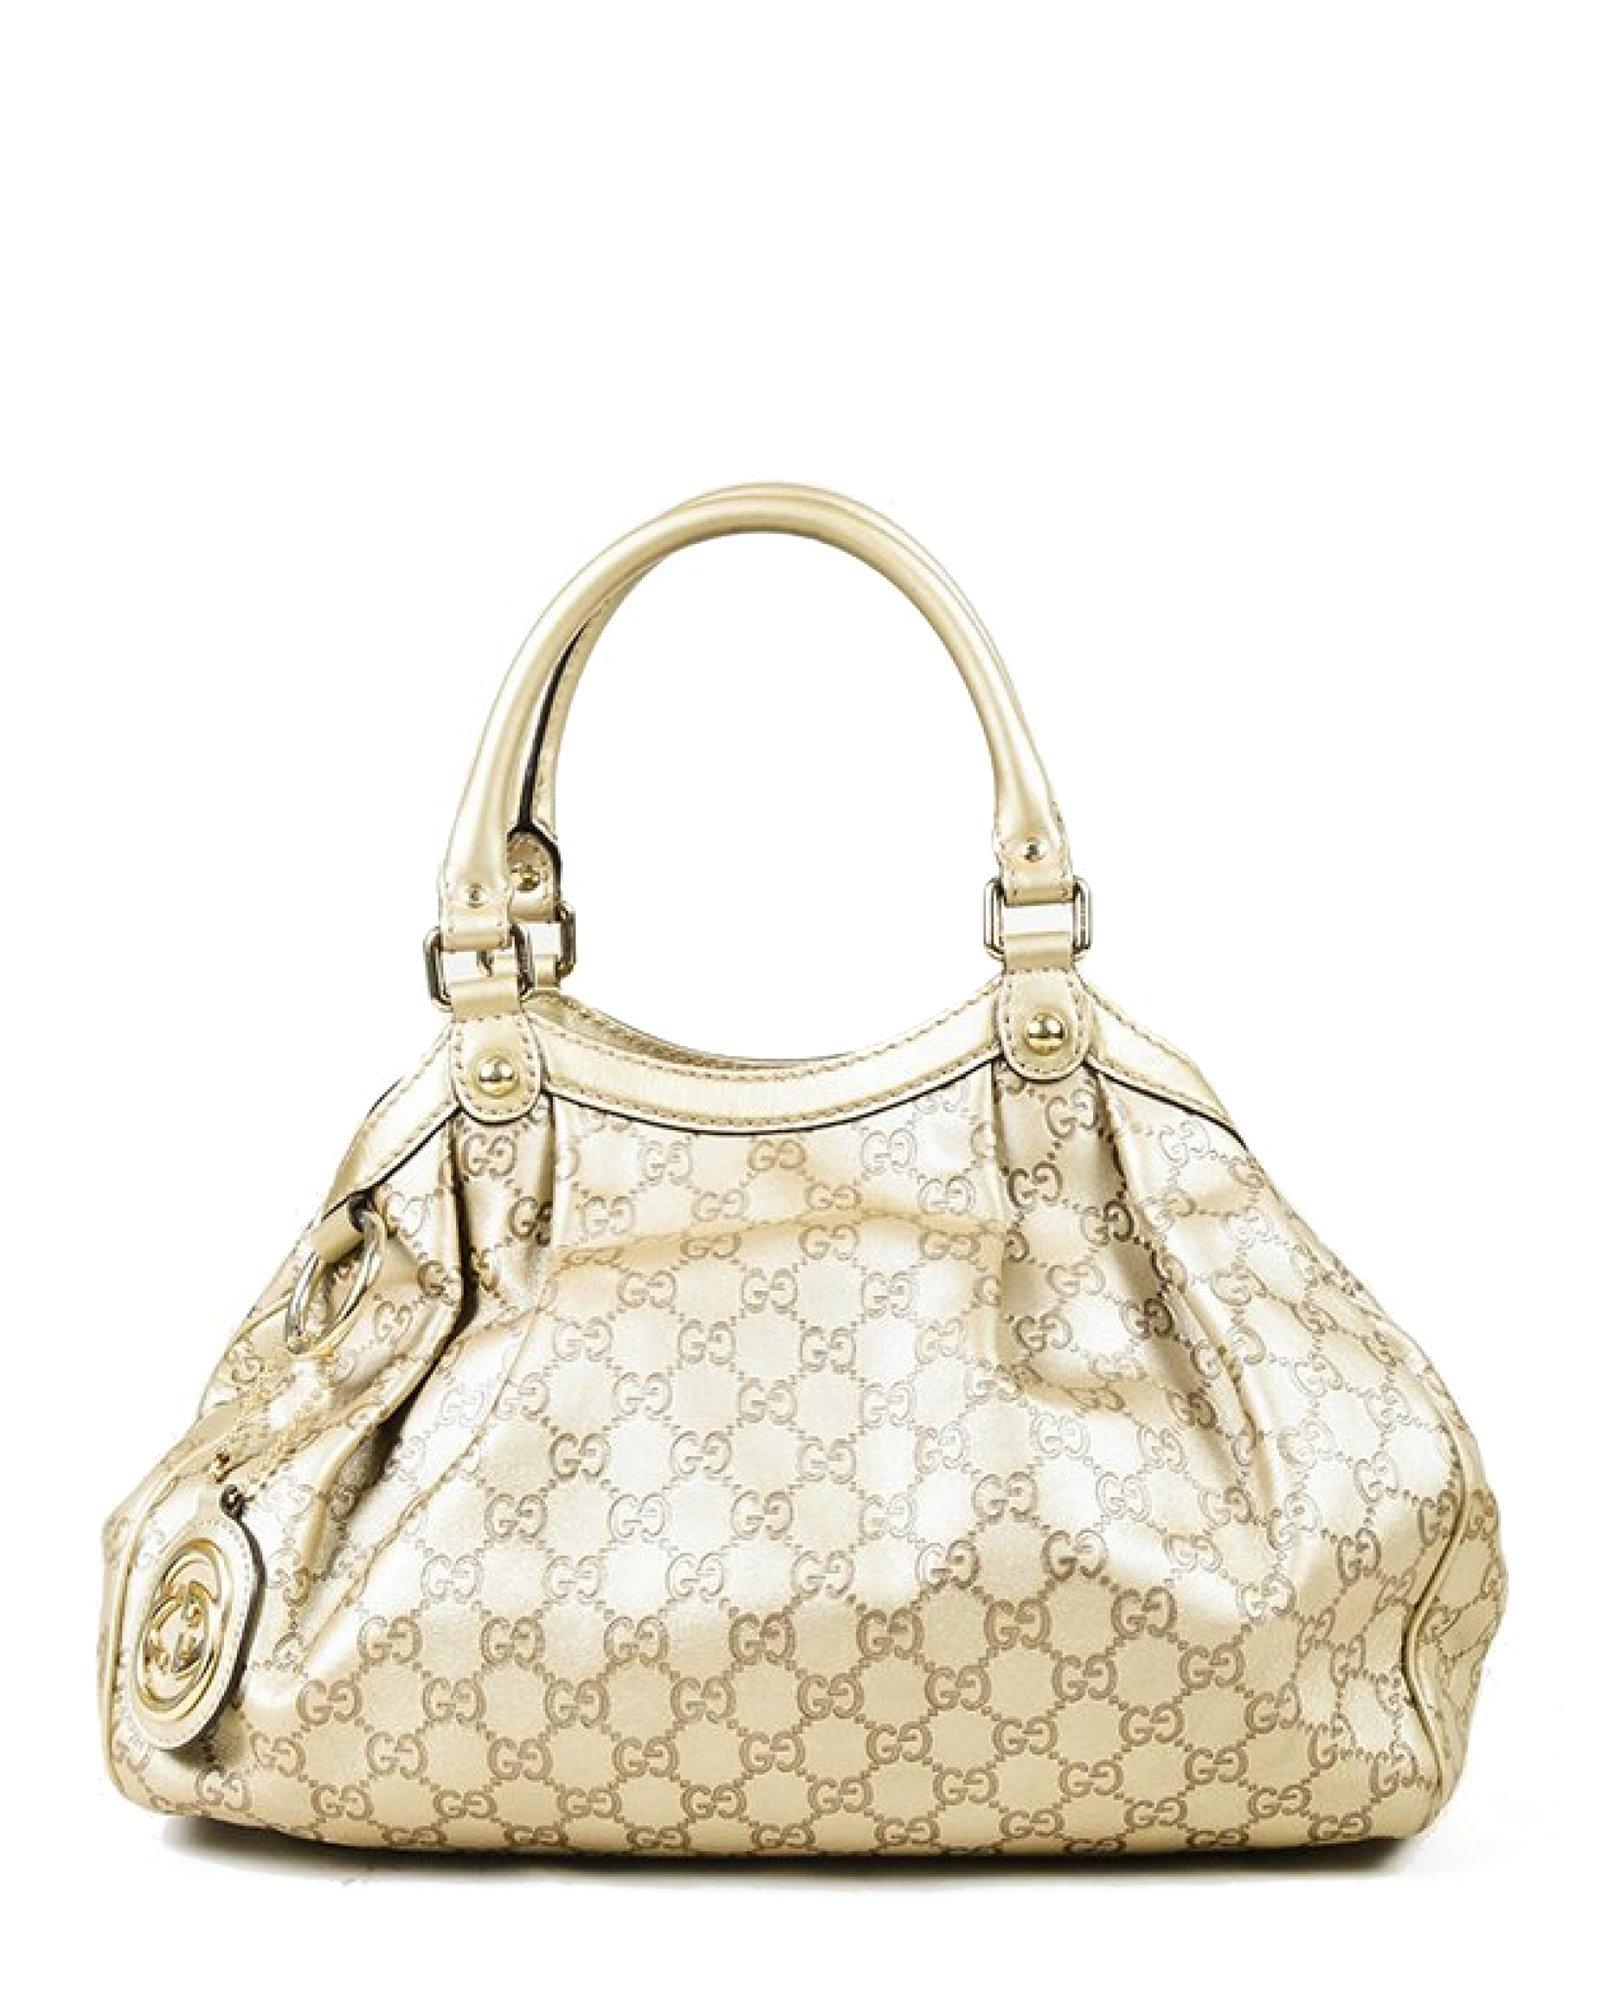 71f4ab20b5f3 Lyst - Gucci Sukey Ssima Shoulder Bag - Vintage in Metallic